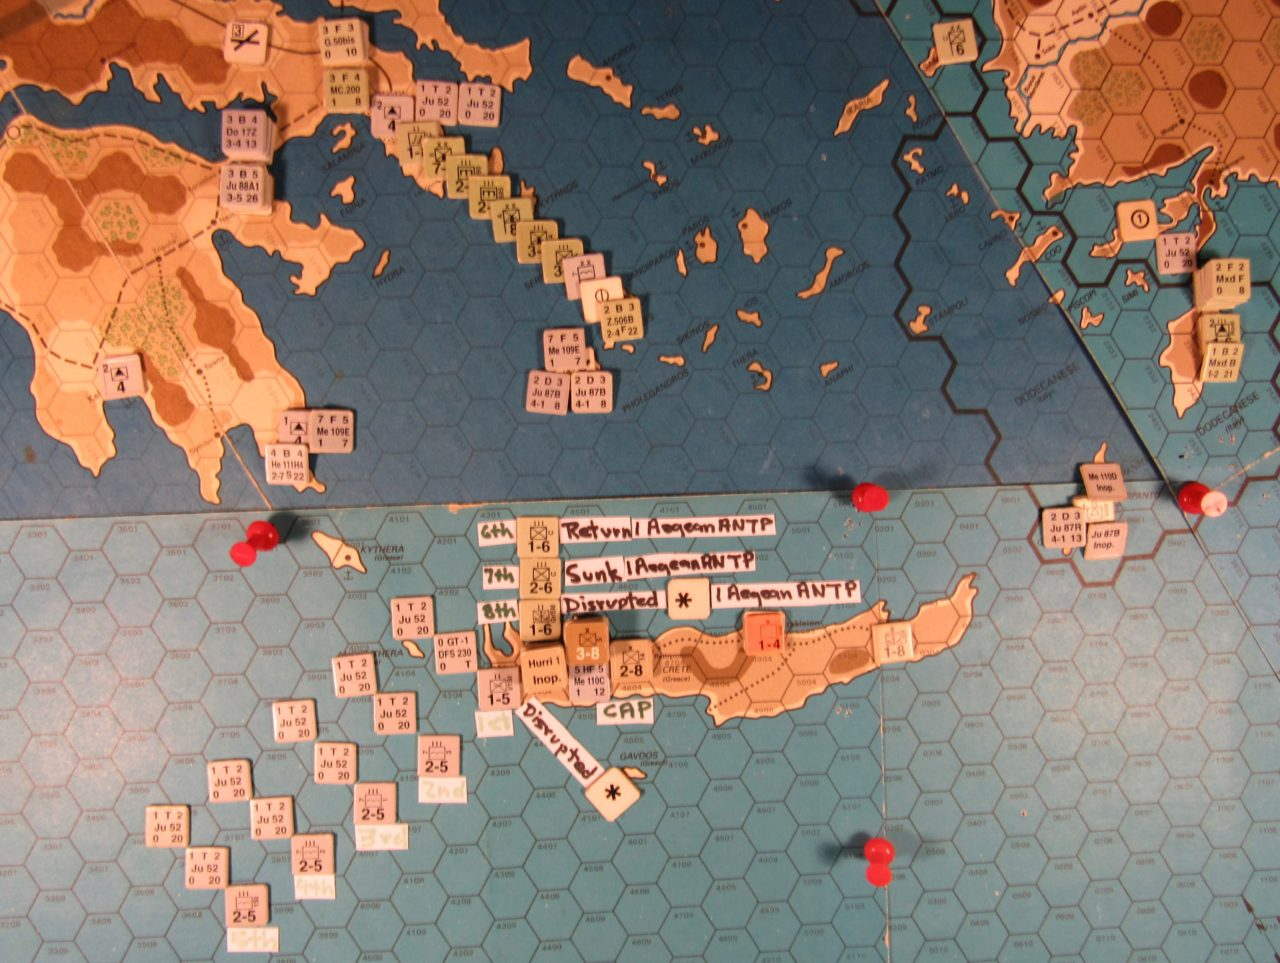 WW ME/ER-II/Crete Scenario May II 41 Axis beginning of the Movement Phase